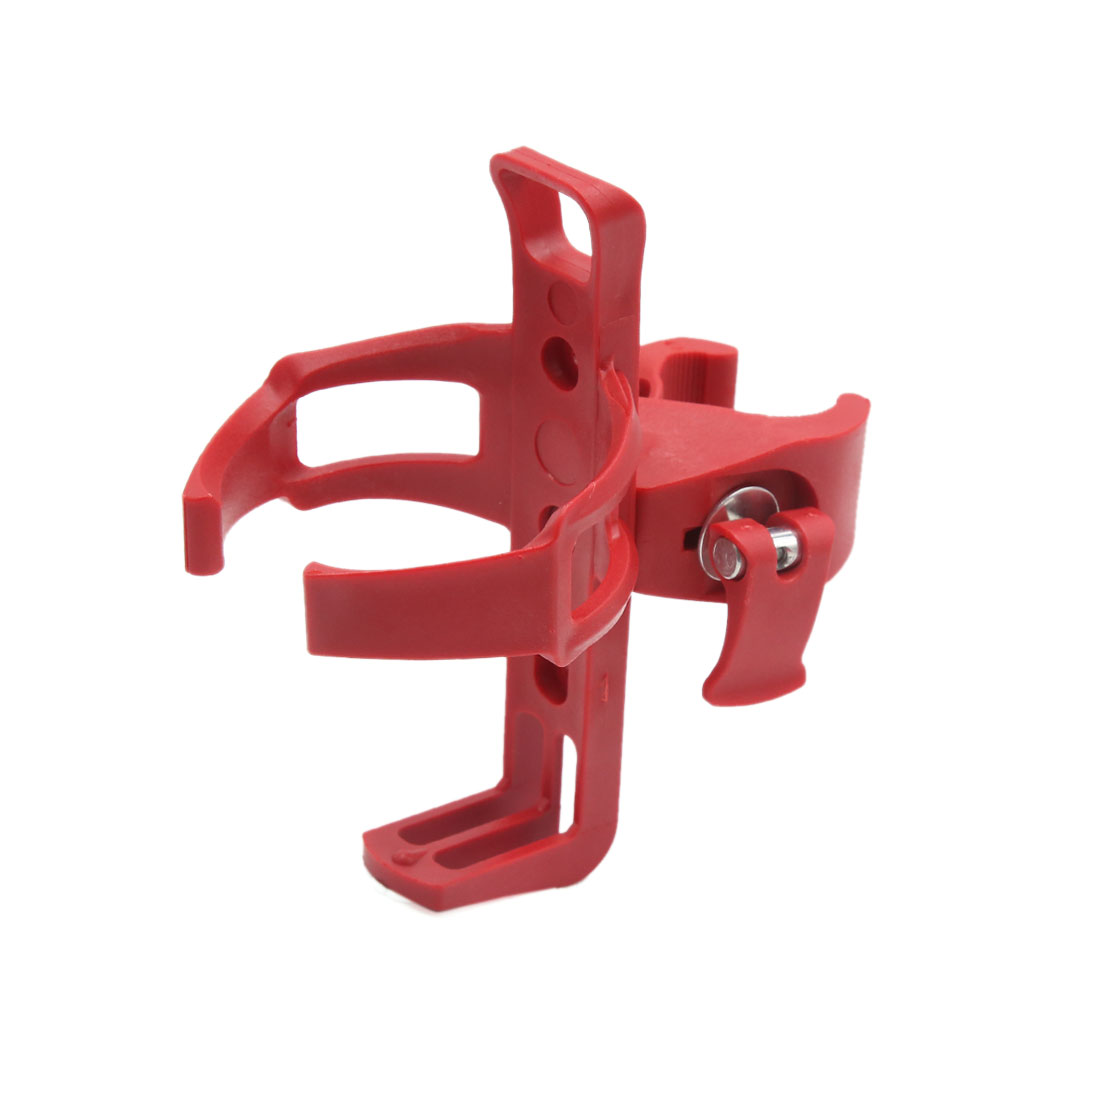 Red Plastic Adjustable Water Bottle Cup Rack Cage Holder for Cycling Bicycle Mountain Bike